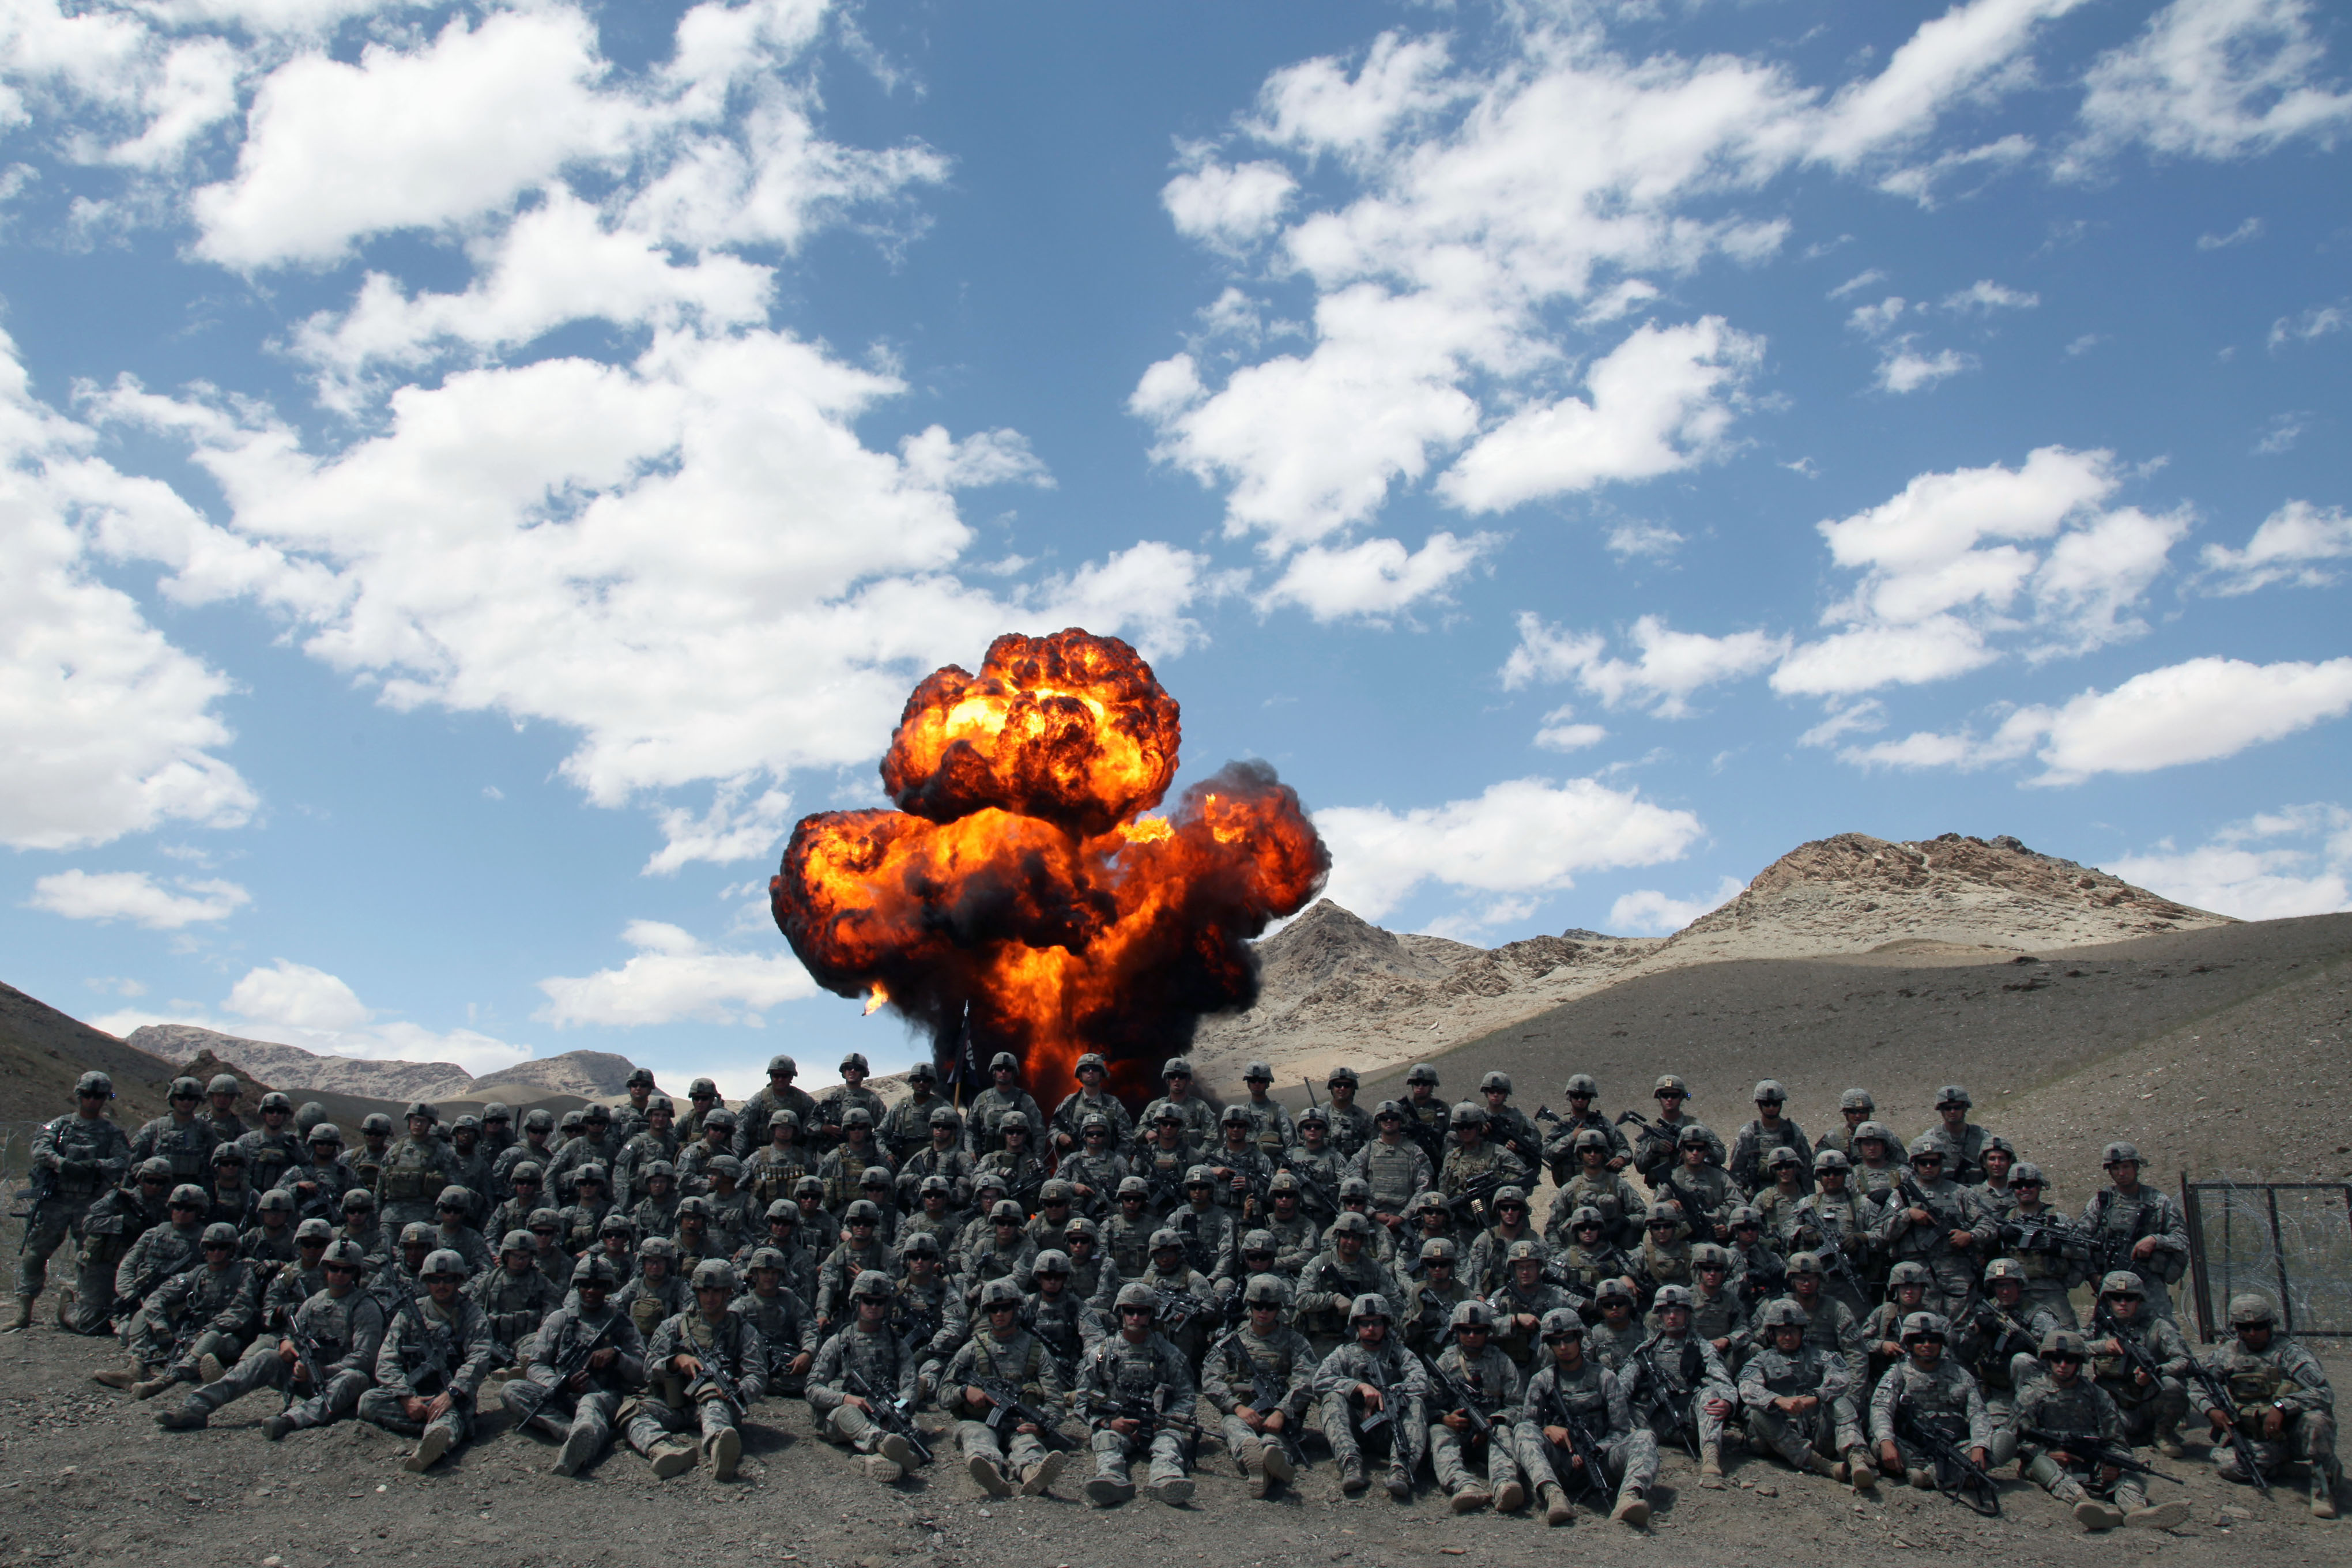 US Army in Afghanistan explosion in the